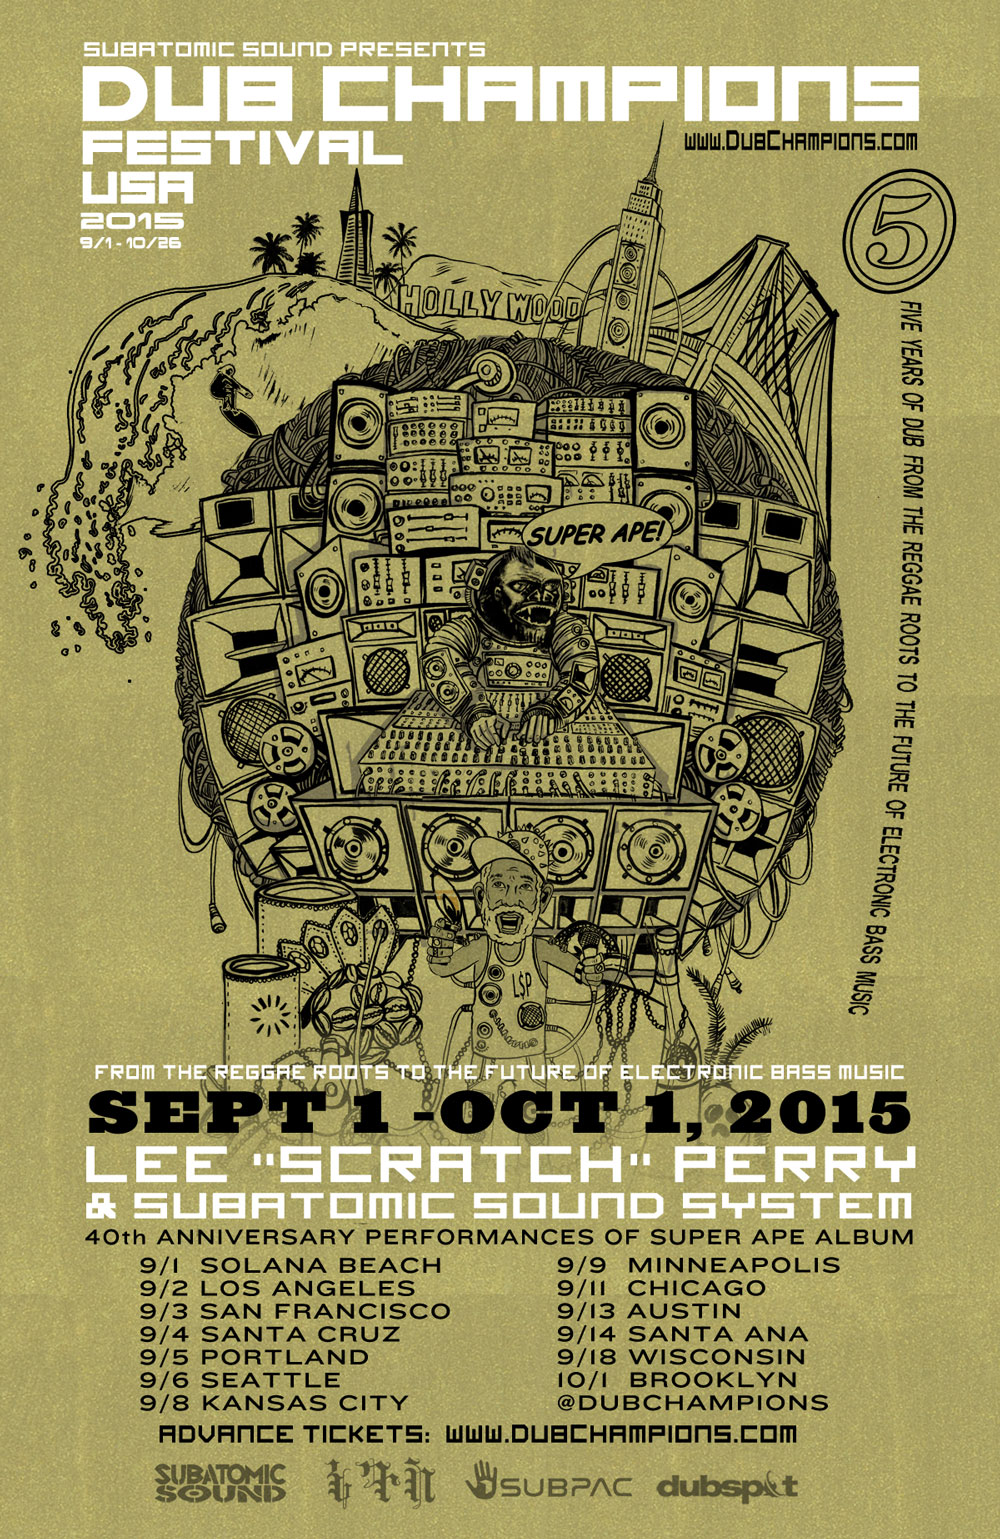 Super Ape Lee Scratch Perry Subatomic Sound System Dub Champions Festival